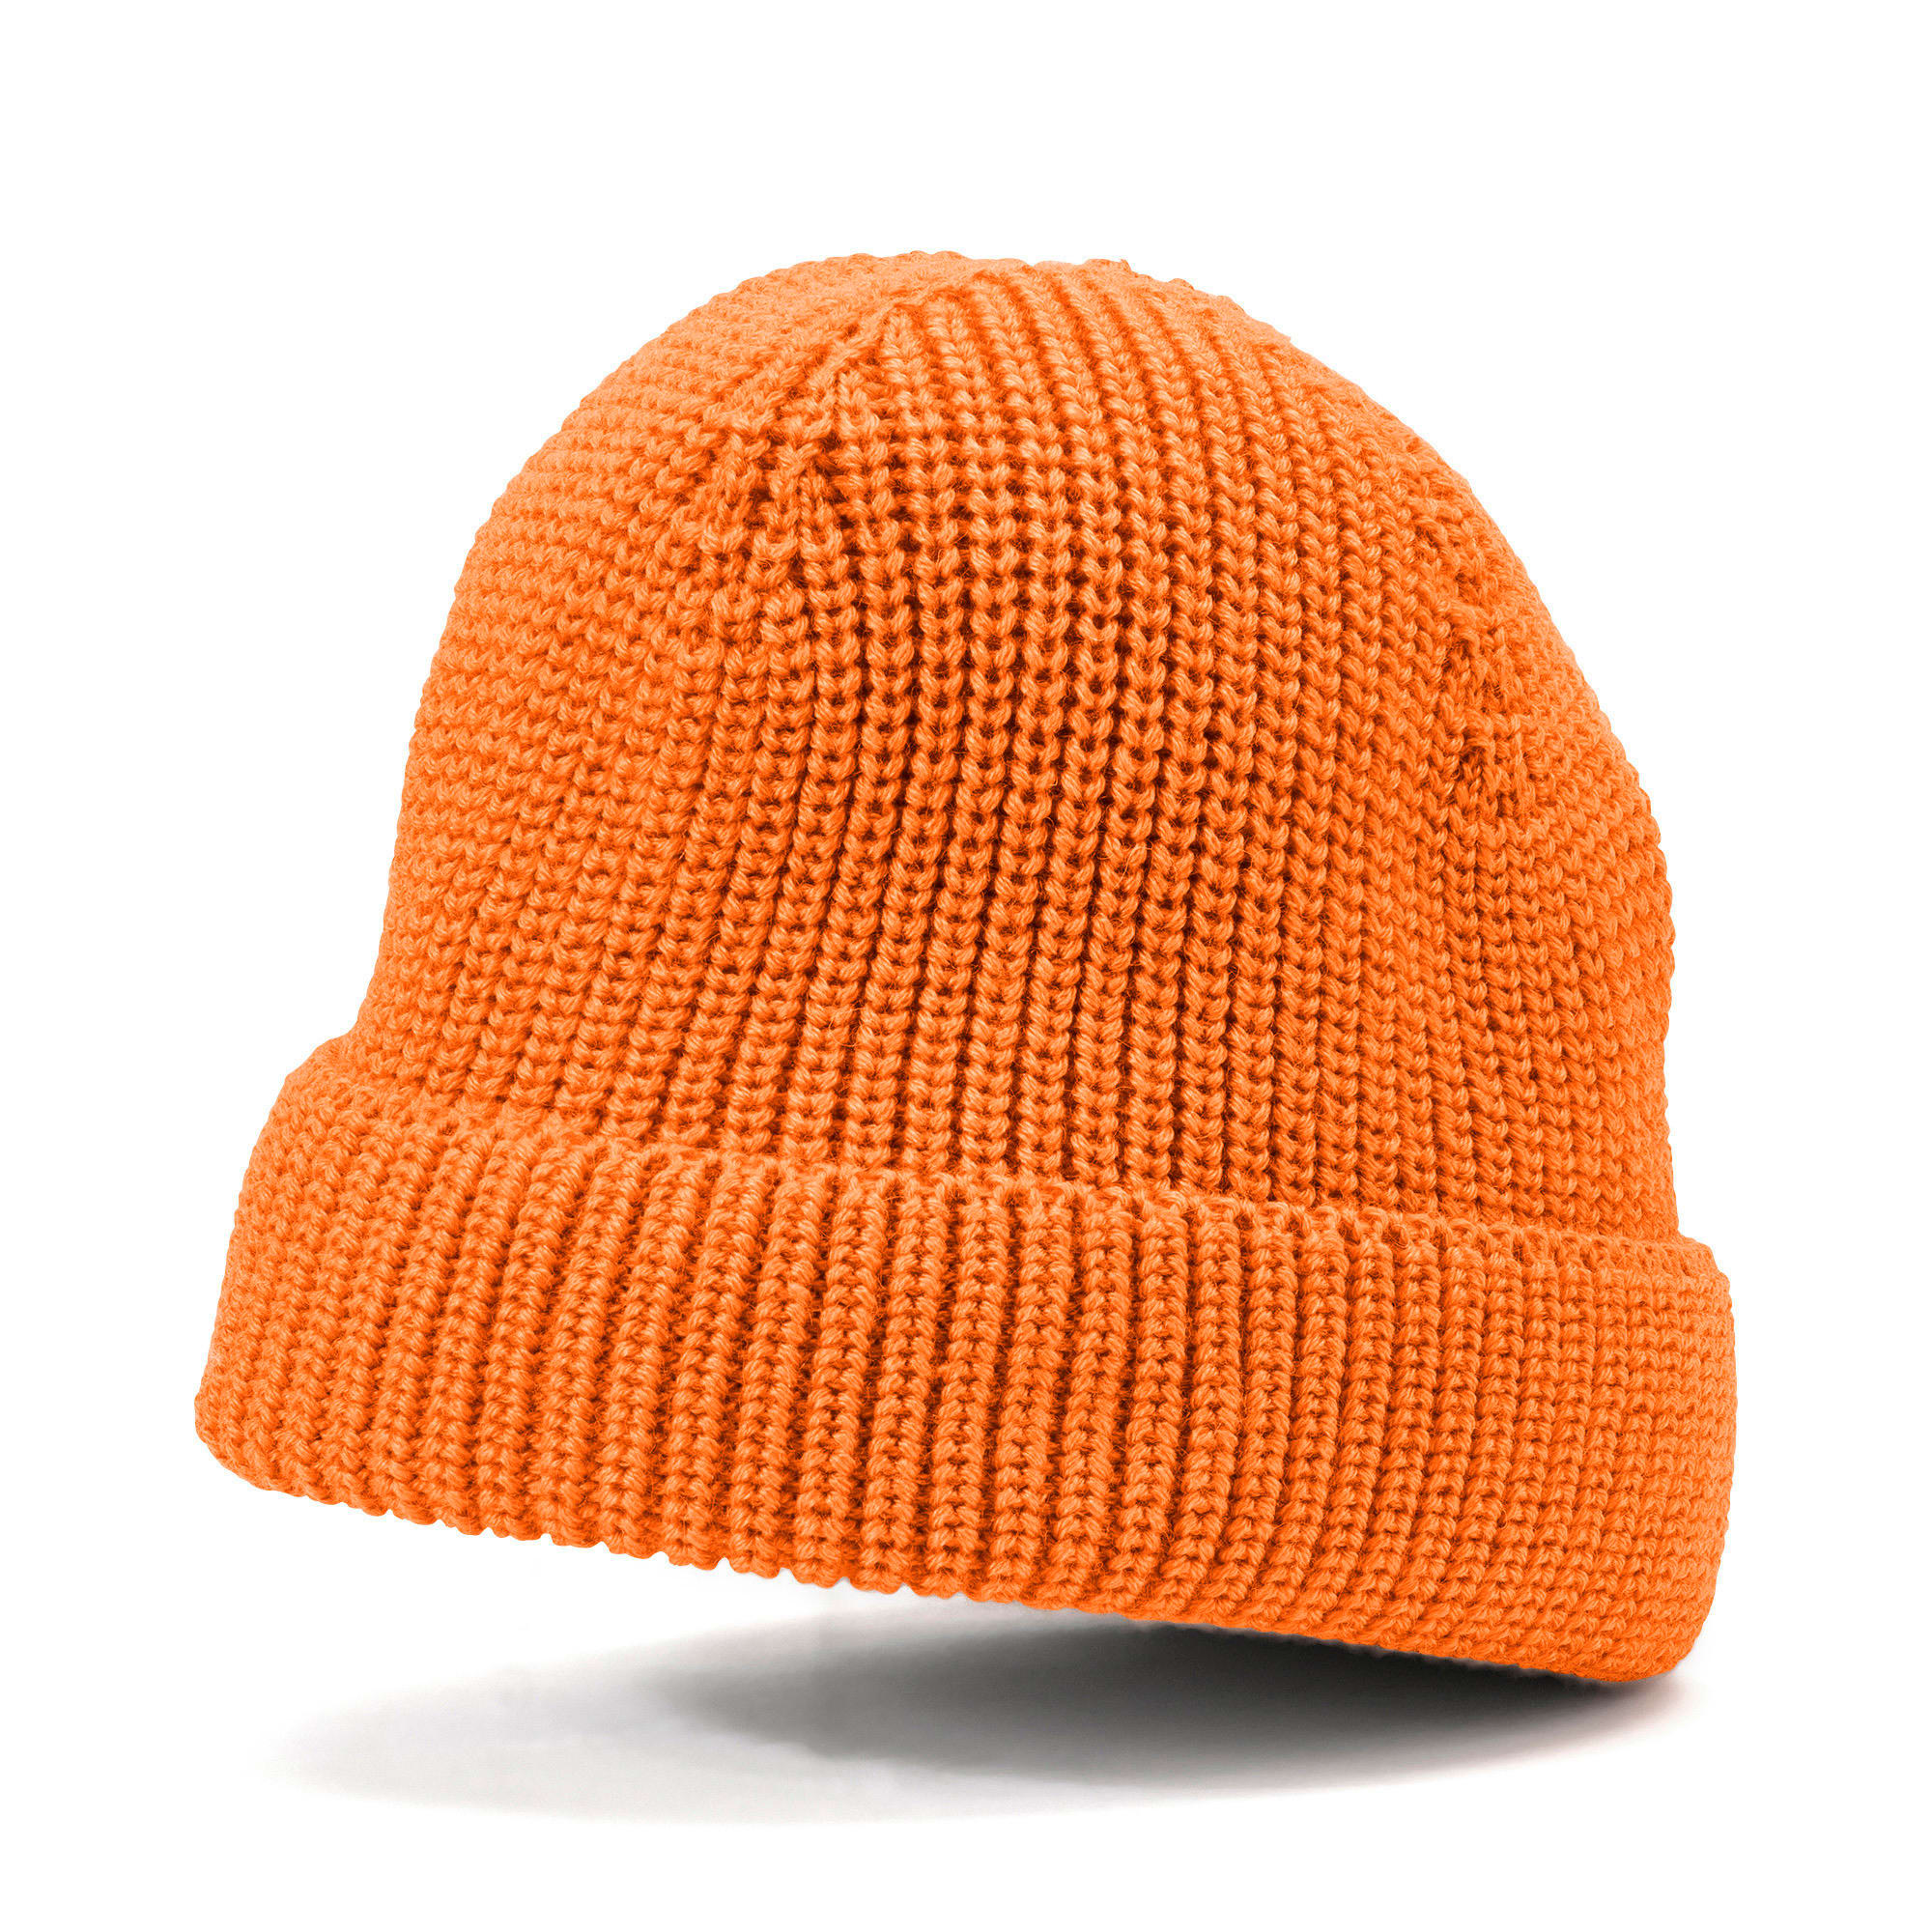 Thumbnail 1 of PUMA x HELLY HANSEN Beanie, Puma Black-Orange Popsicle, medium